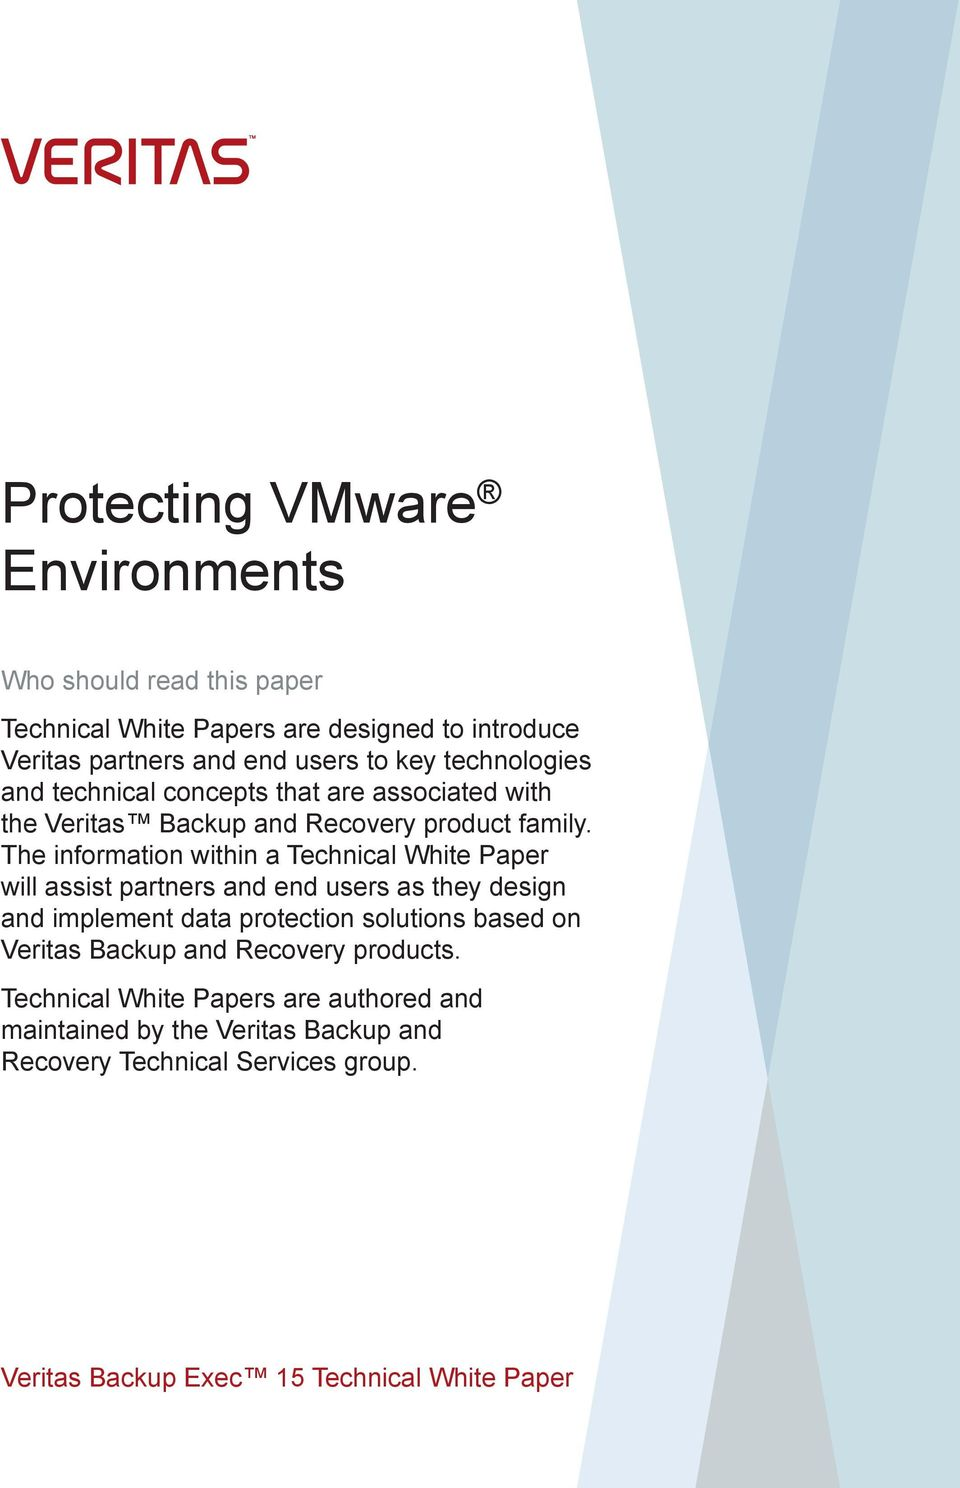 The information within a Technical White Paper will assist partners and end users as they design and implement data protection solutions based on